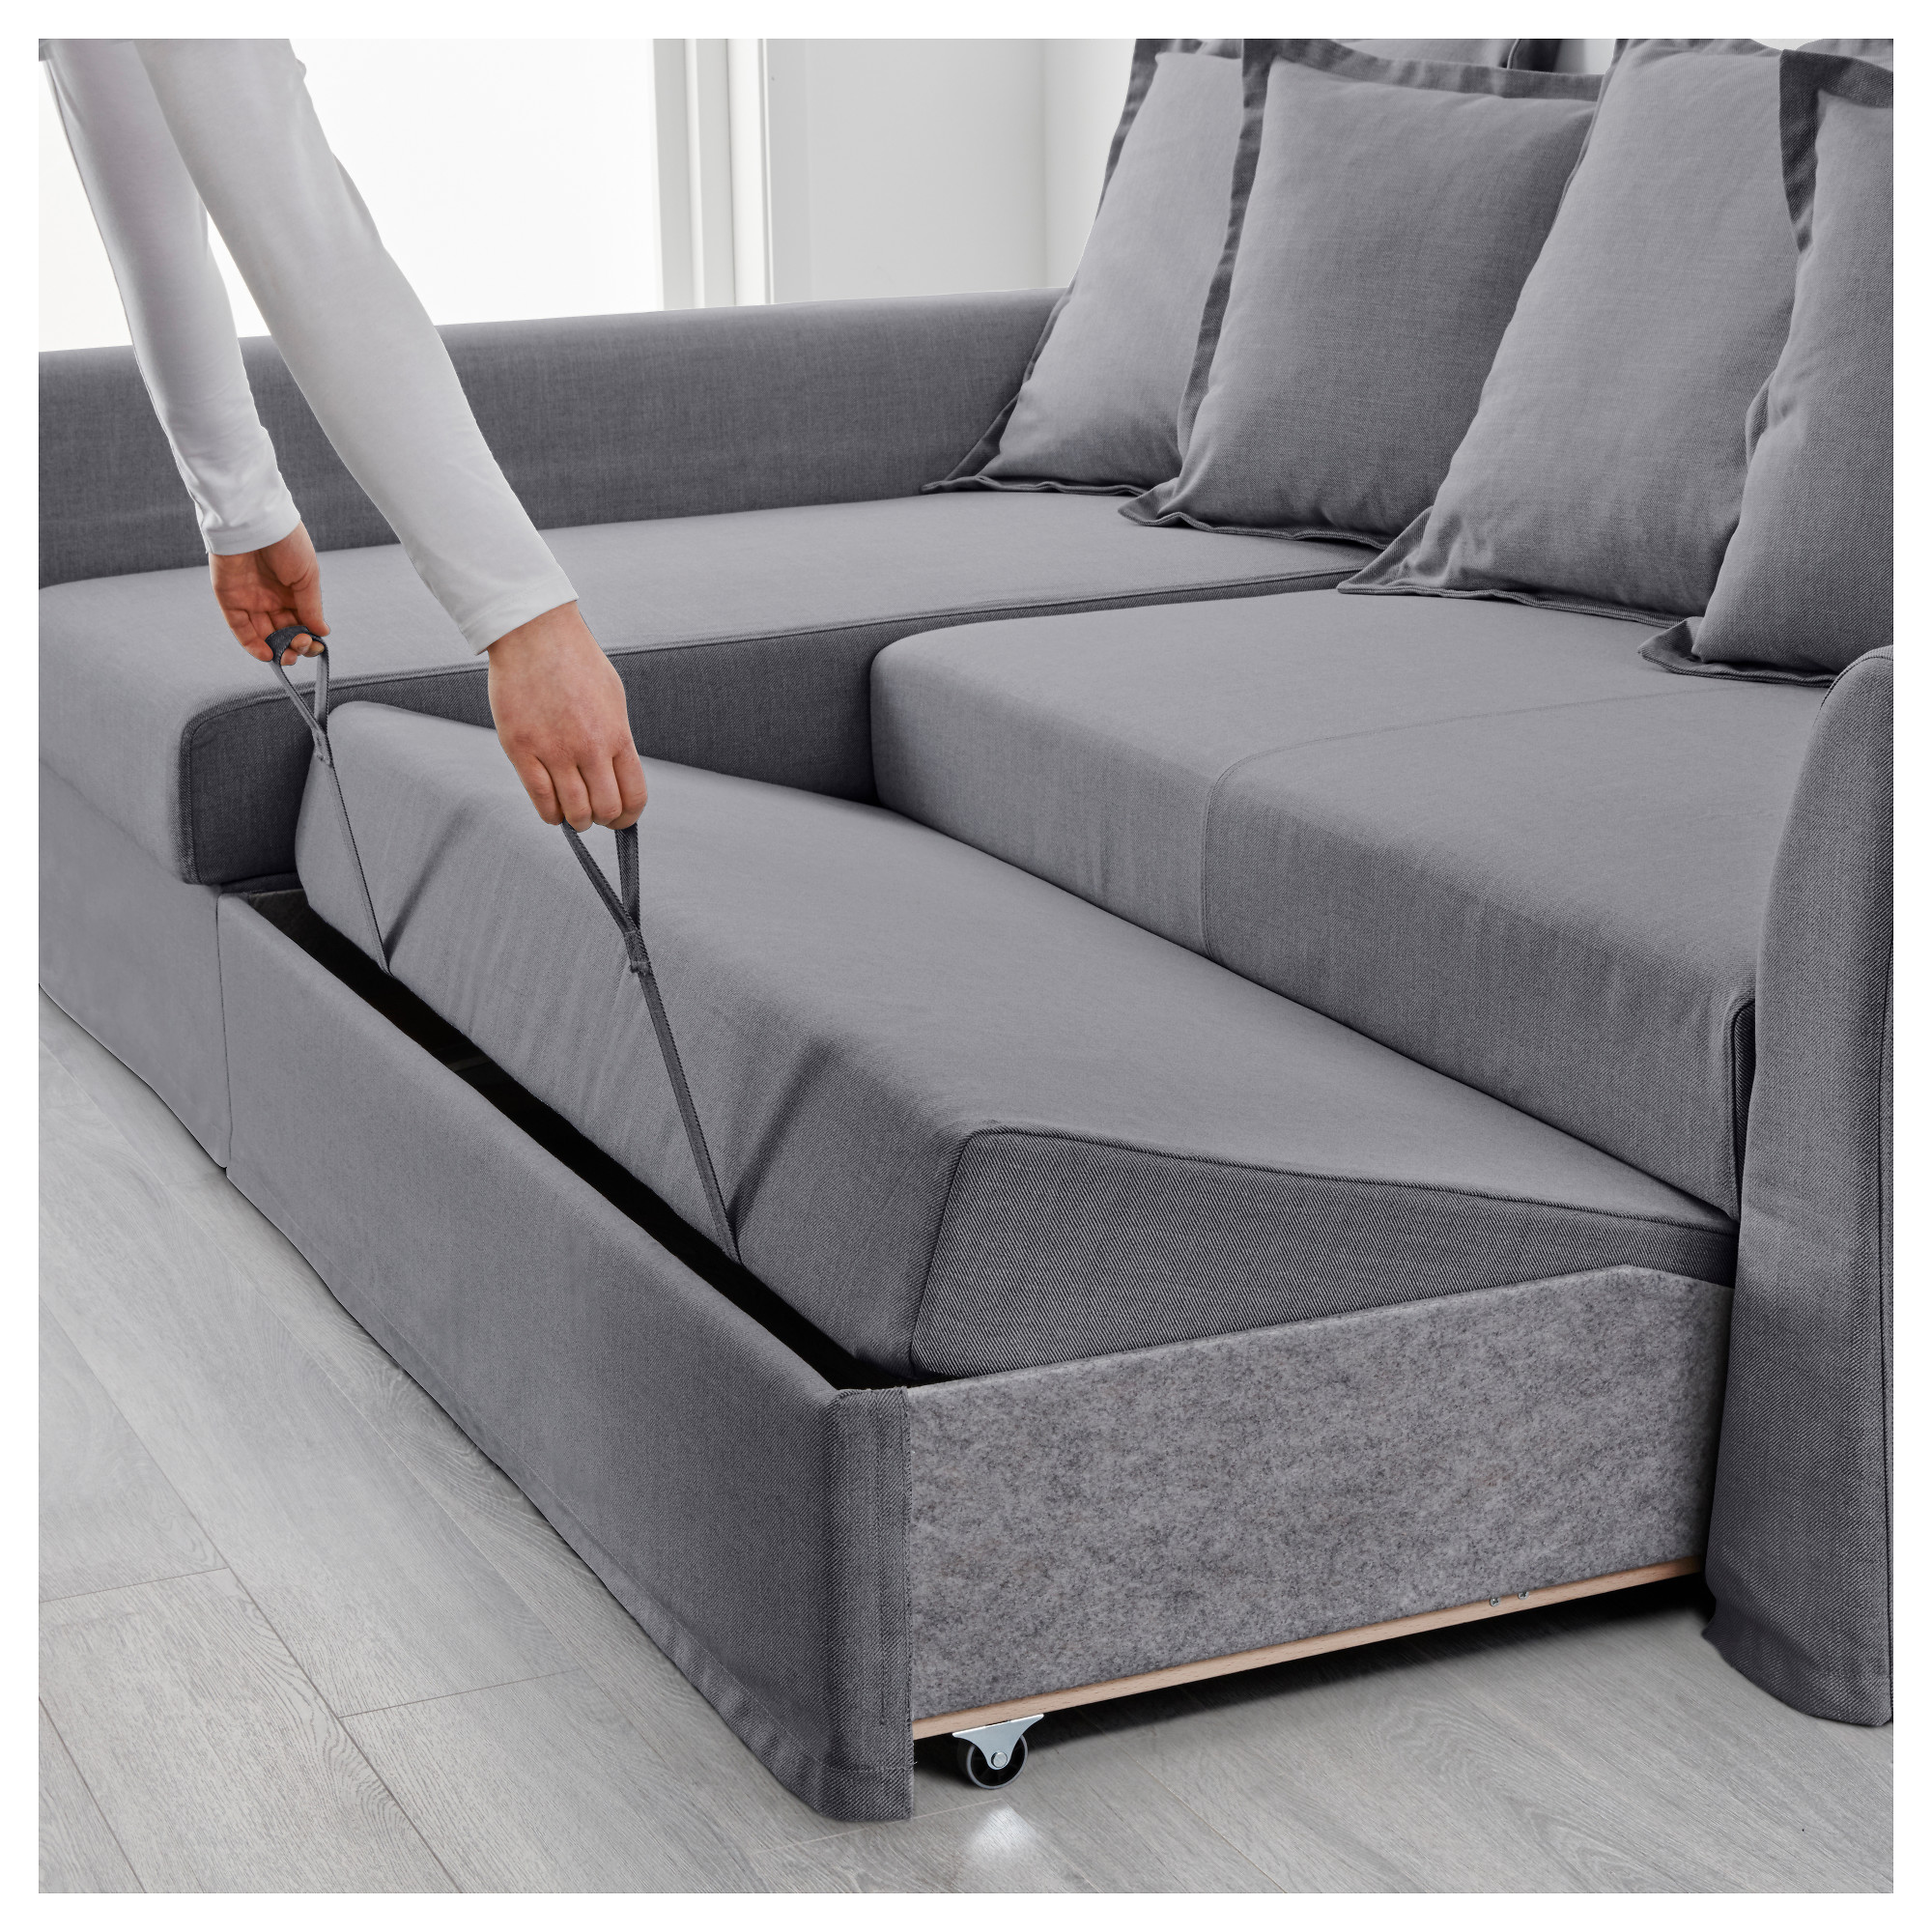 Delicieux HOLMSUND Sleeper Sectional, 3 Seat   Nordvalla Medium Gray   IKEA